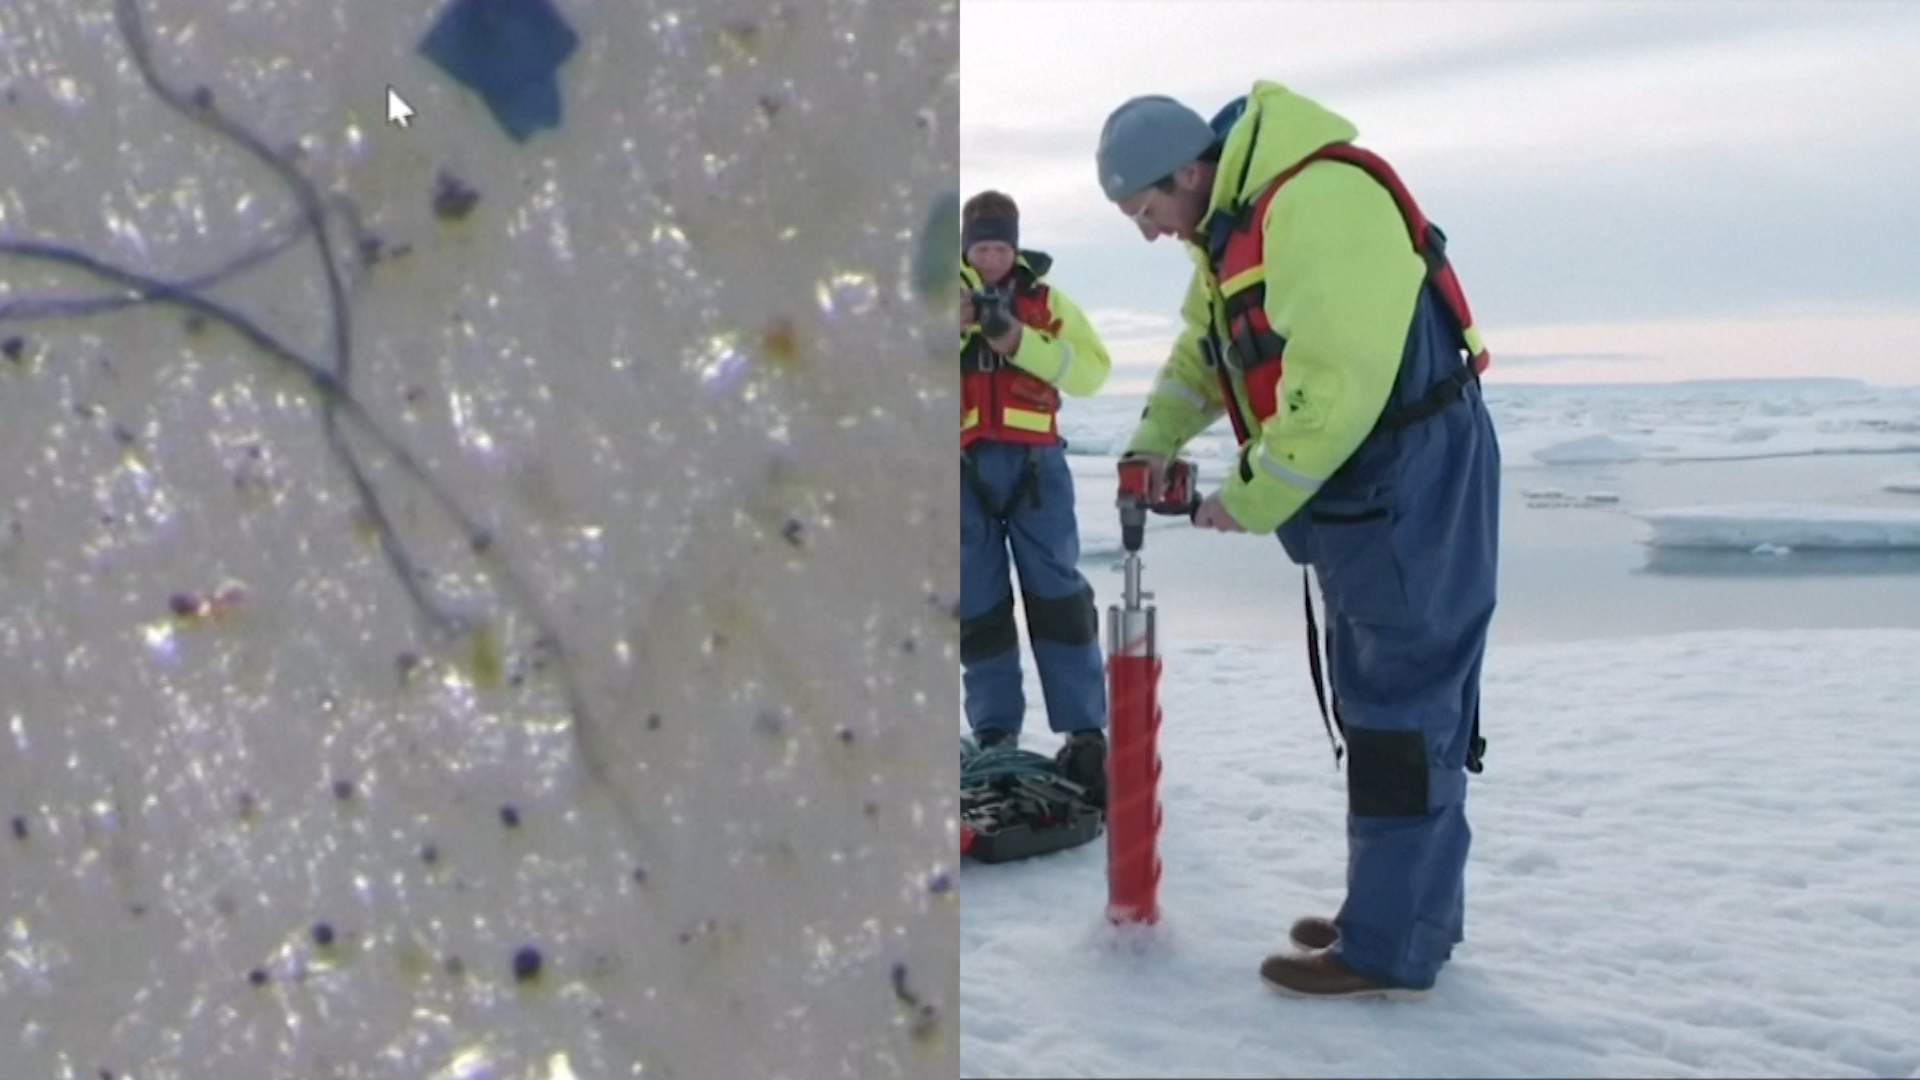 Scientists Astonished After Finding Microplastics In Arctic Snow